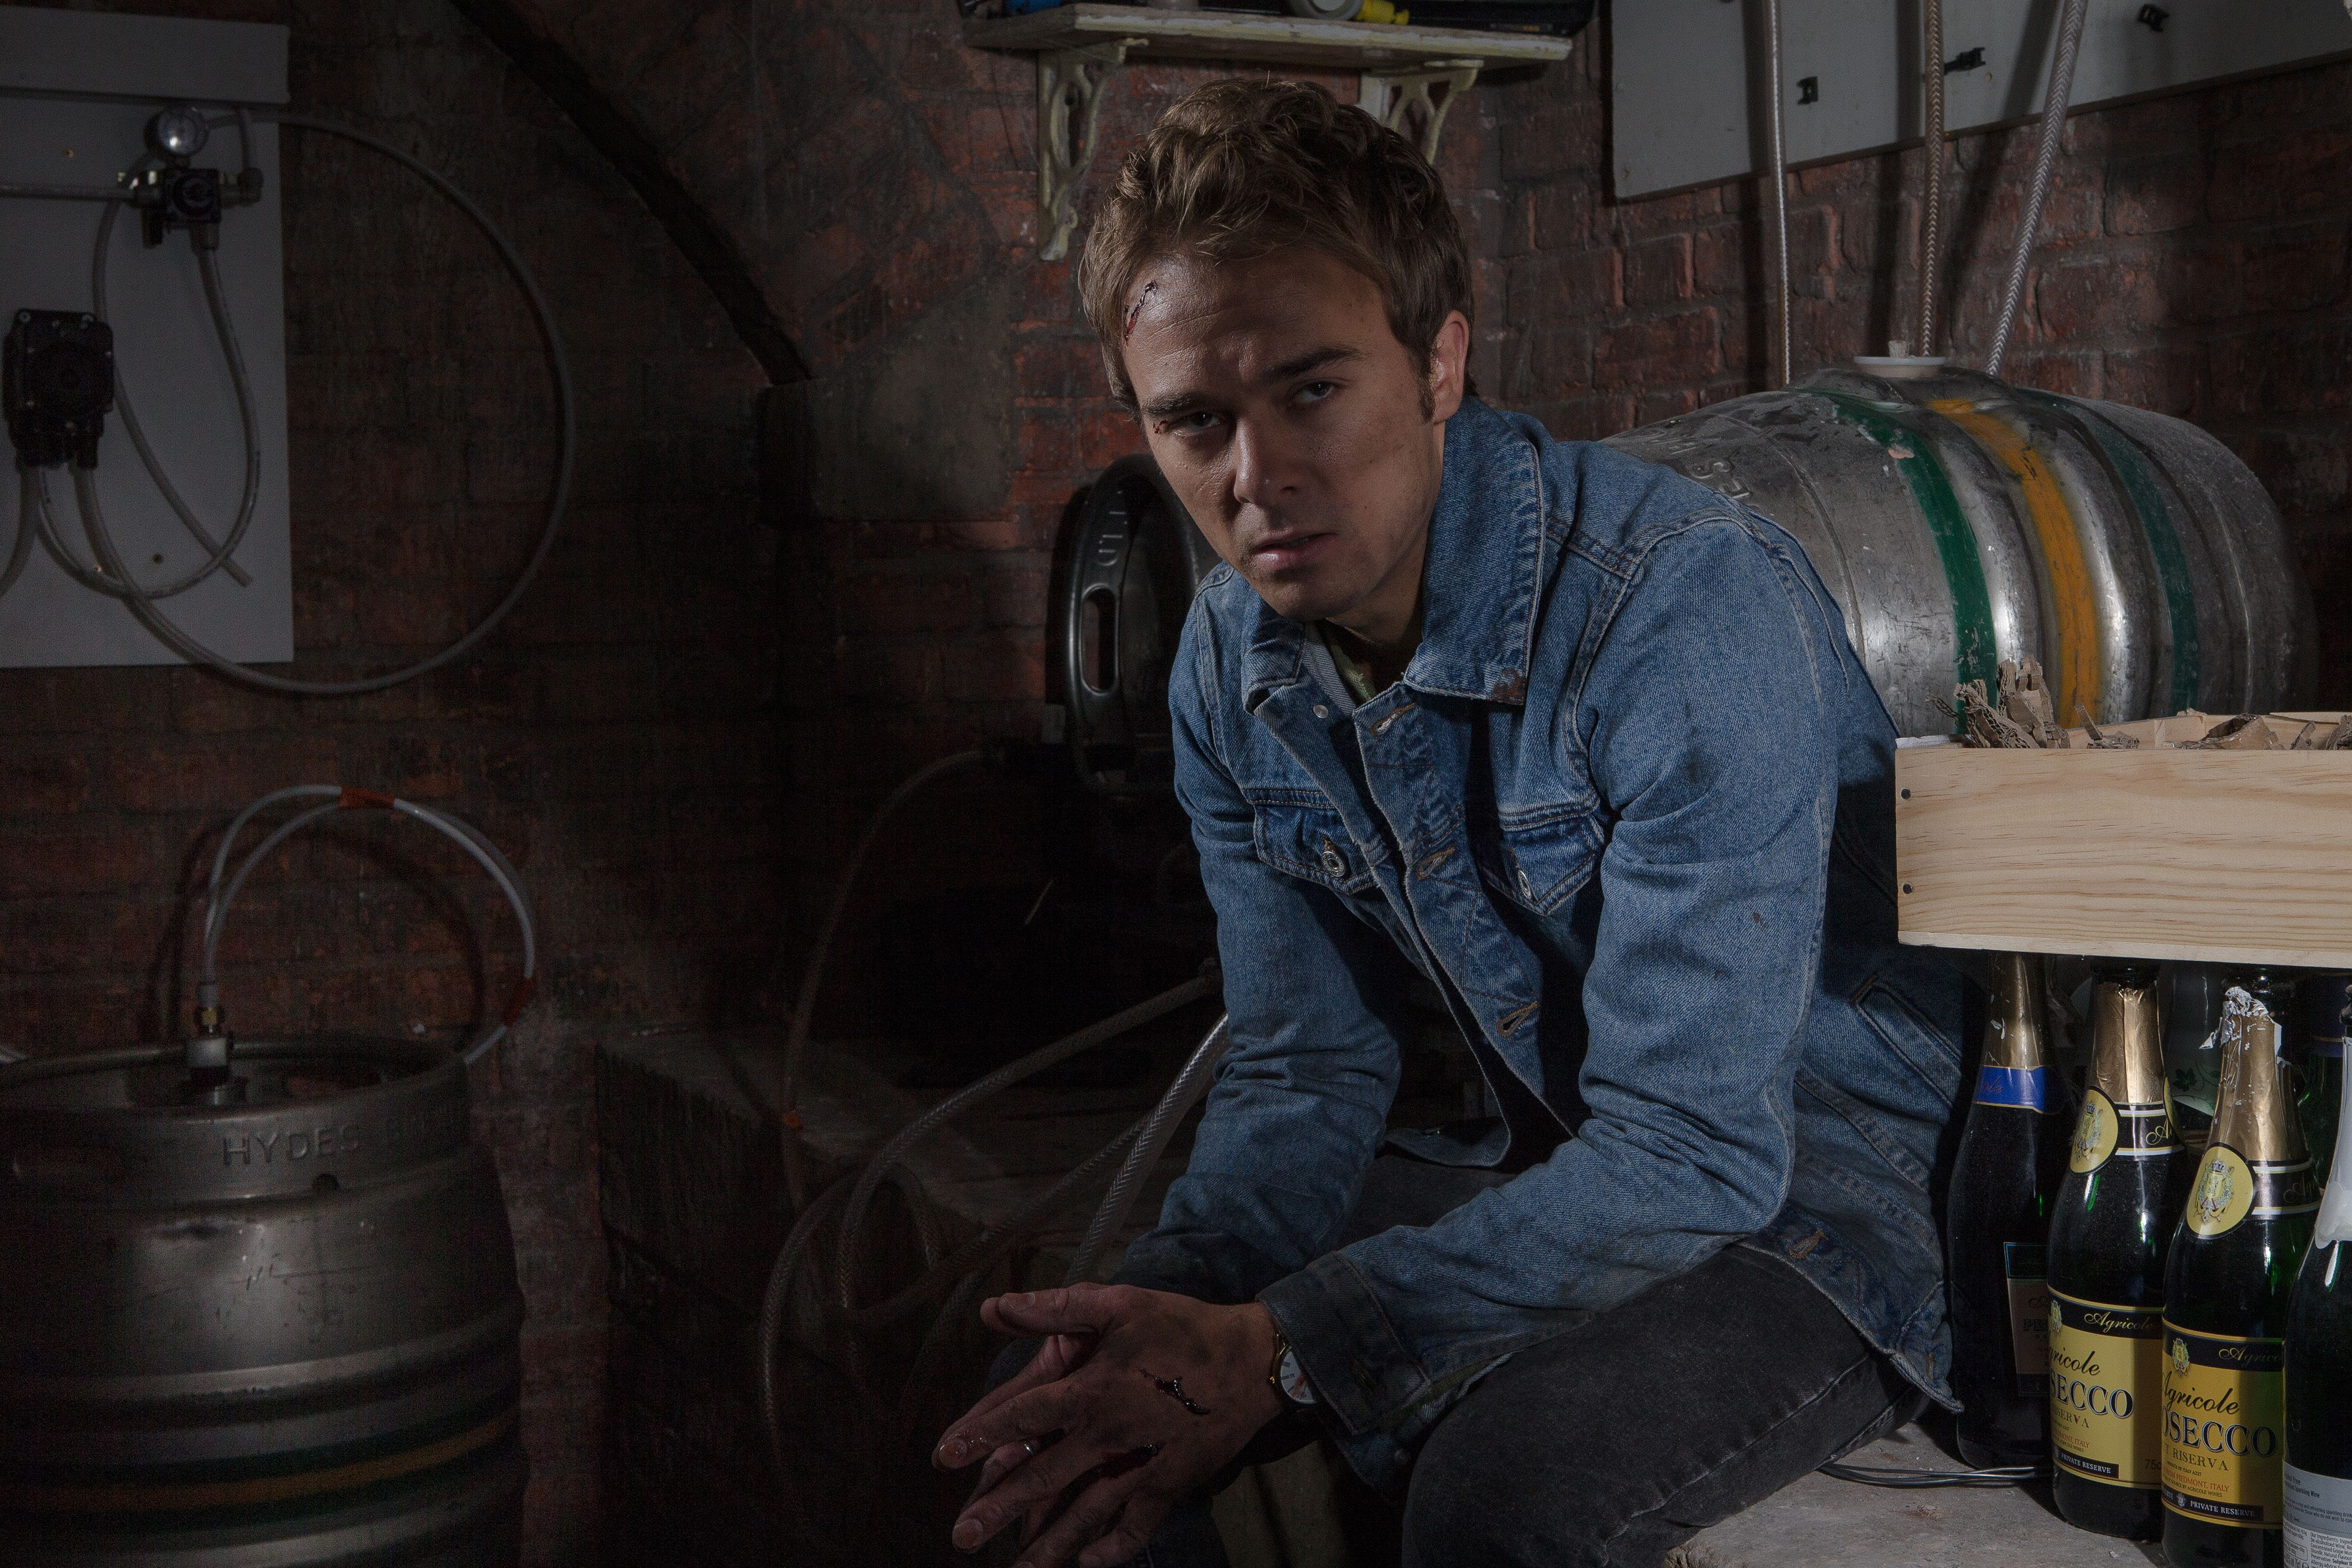 Coronation Street: David's actions have huge consequences for many people reveals Jack P Shepherd